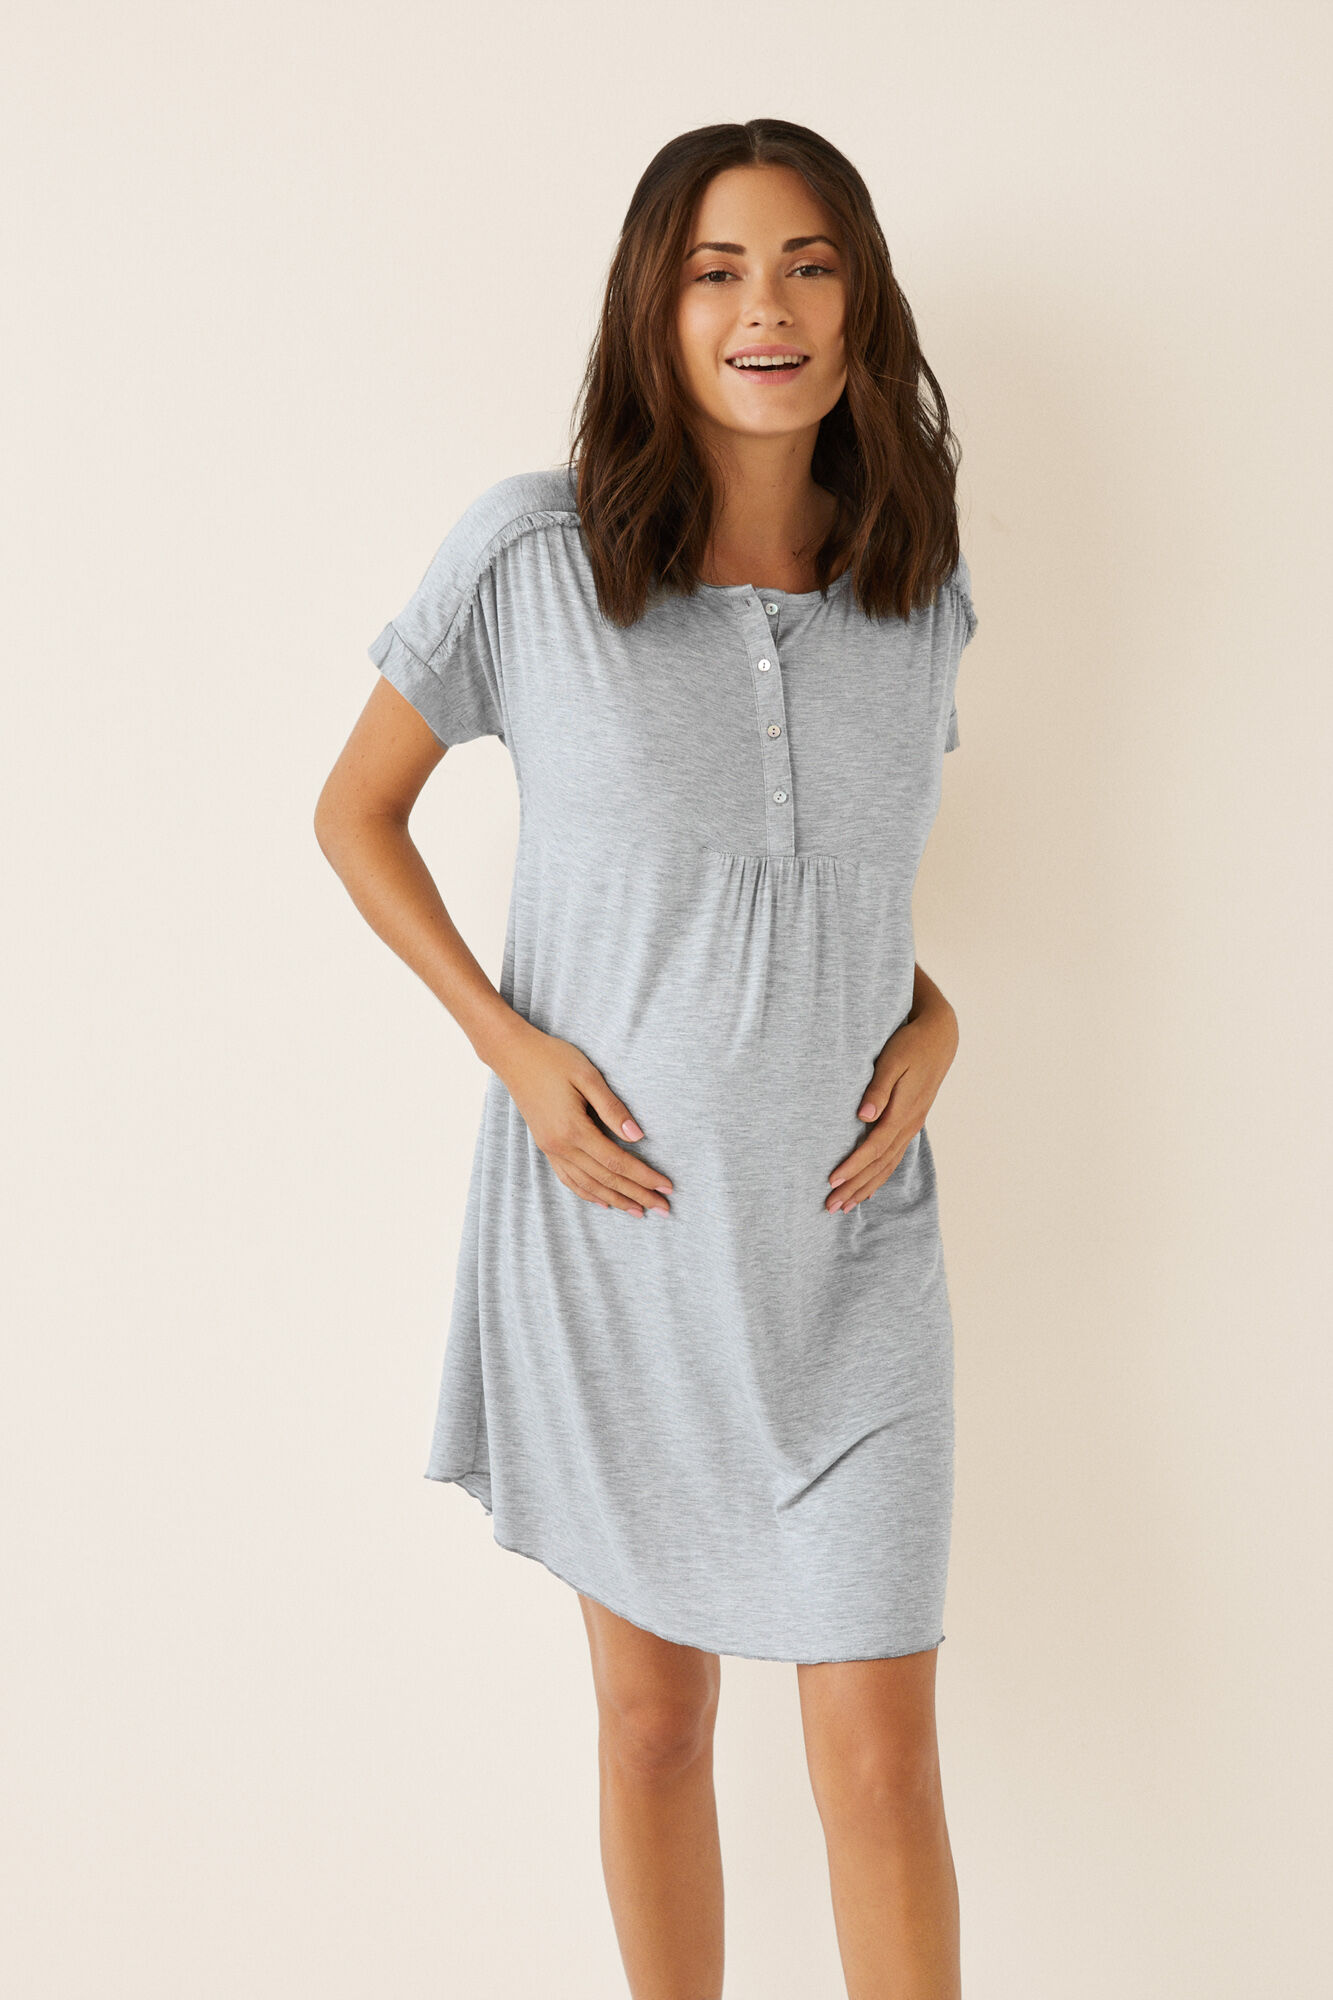 9032c8efa1541 Short maternity nightgown | Maternity | Women'secret